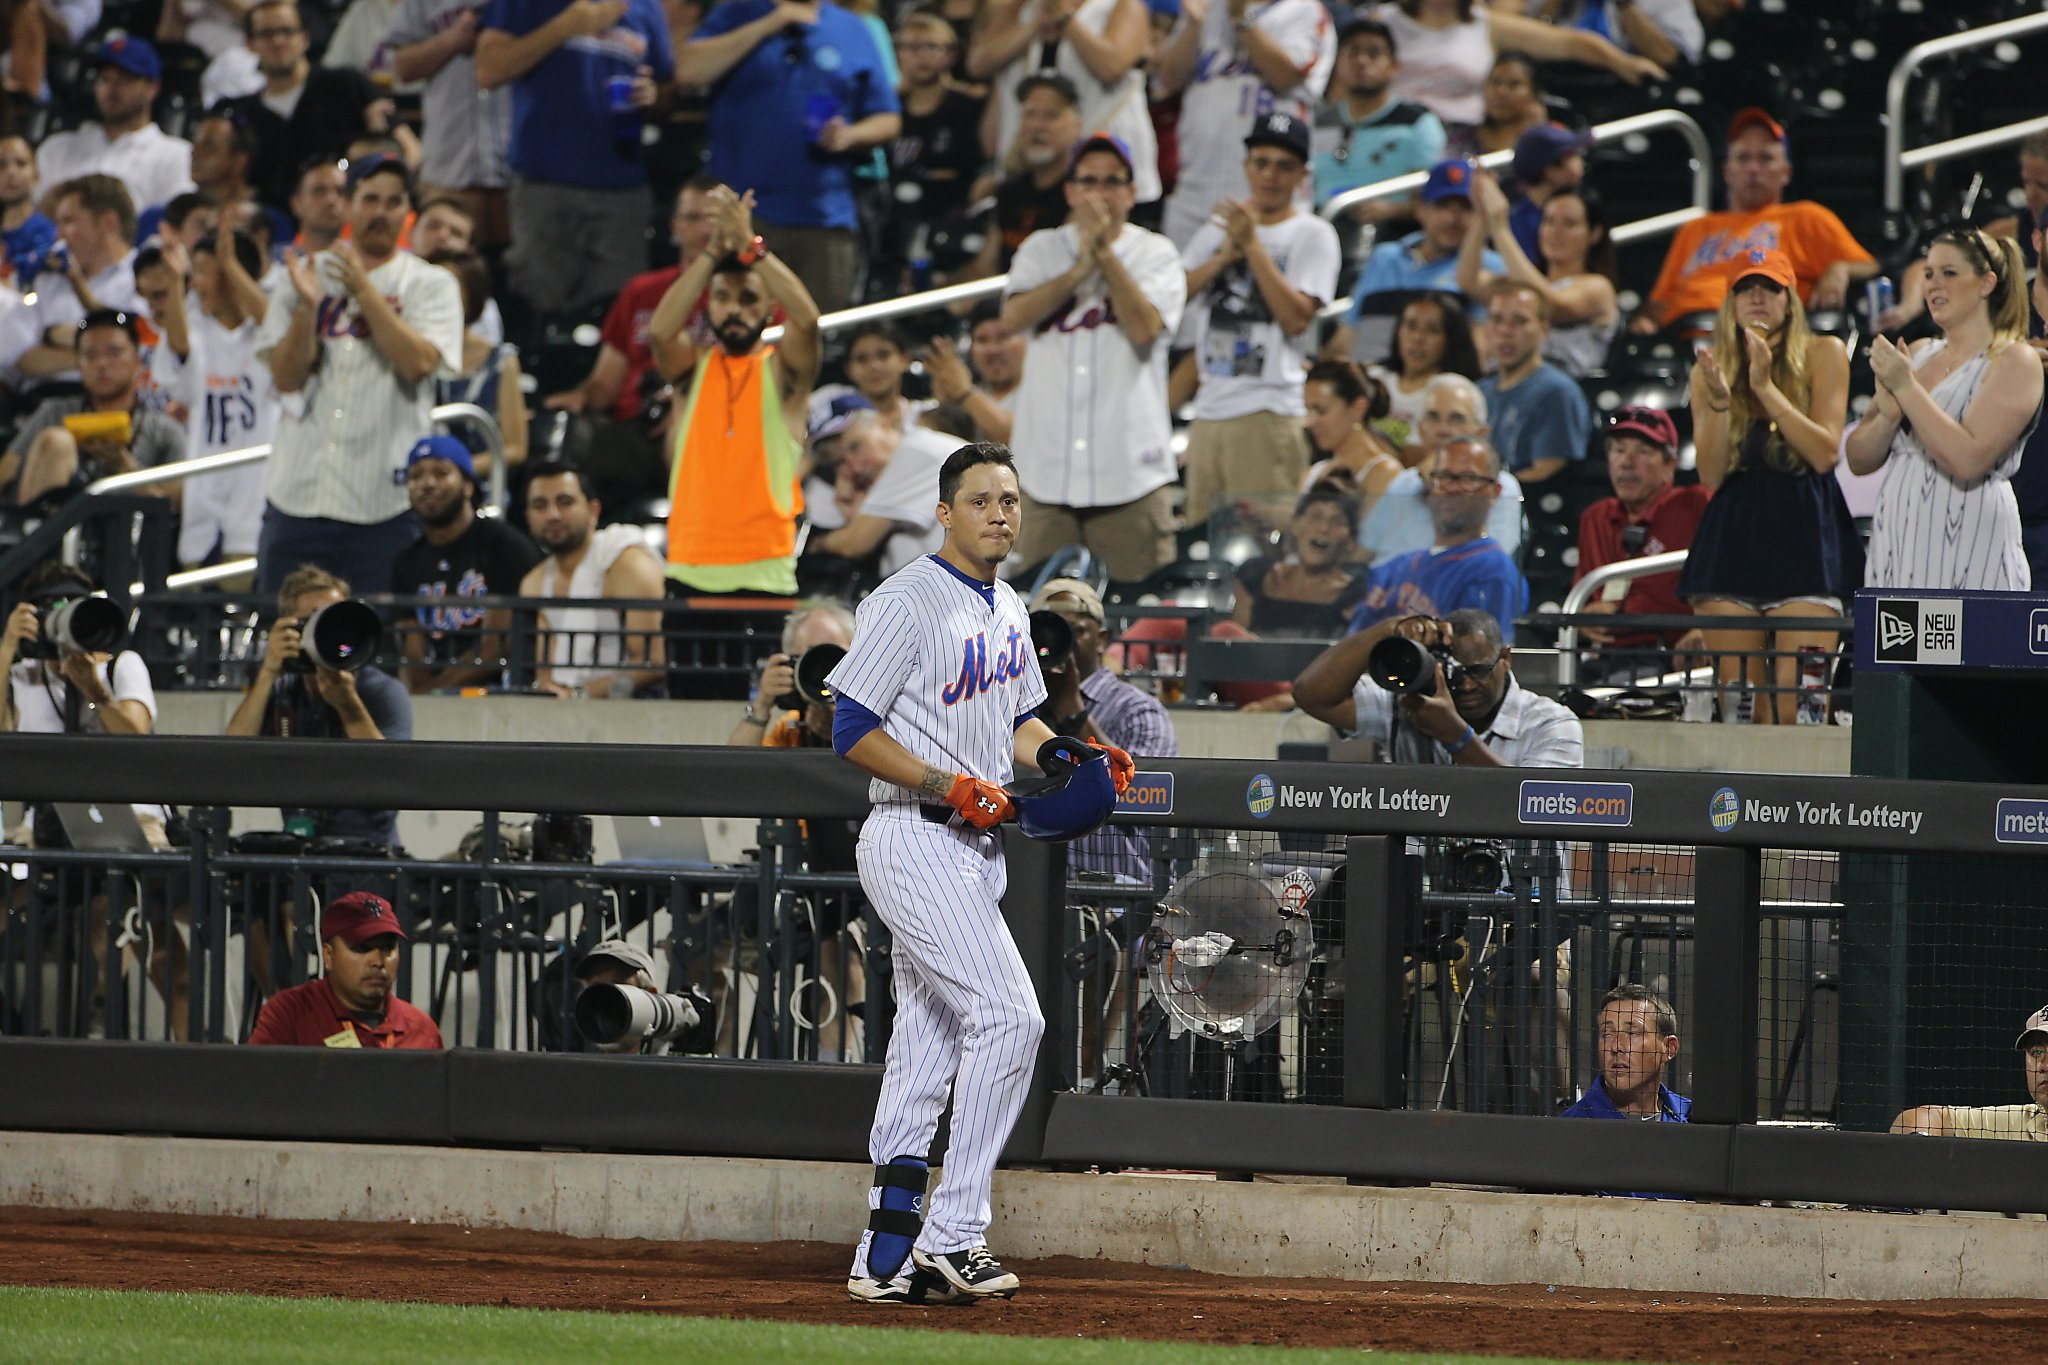 Giants infielder Wilmer Flores recalls tears he shed for millions to see